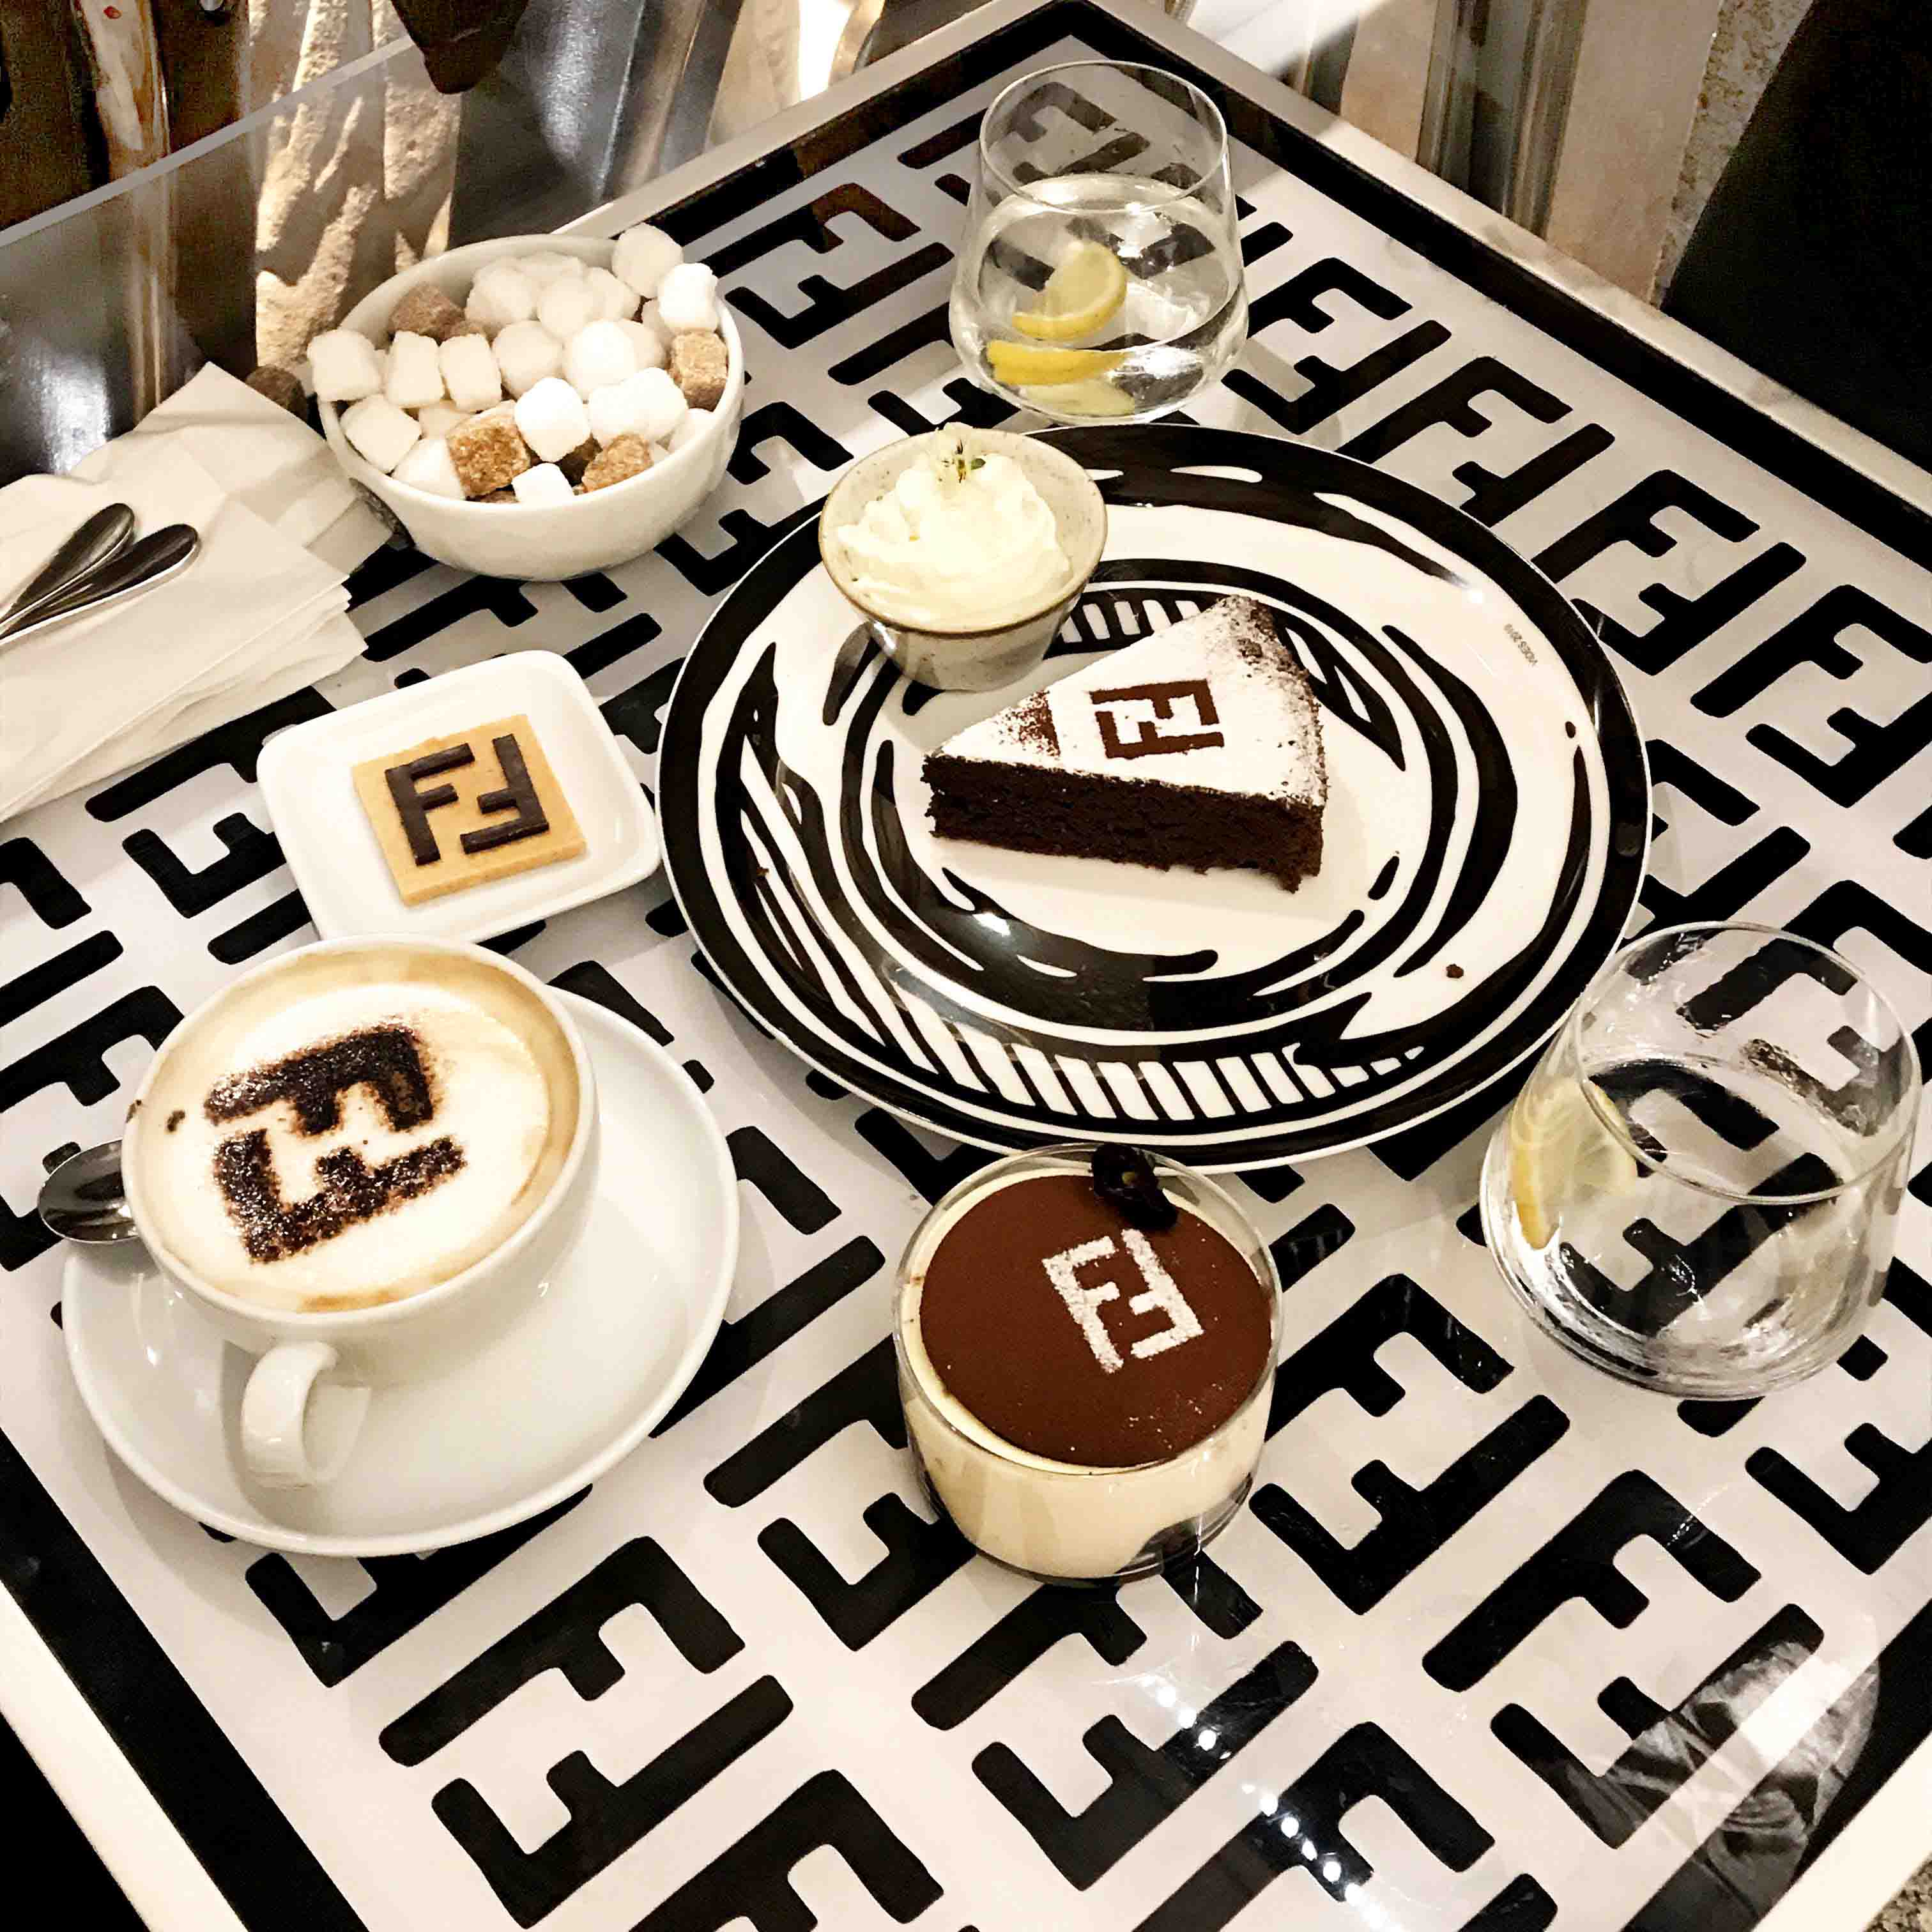 Fendi Café at Harrods